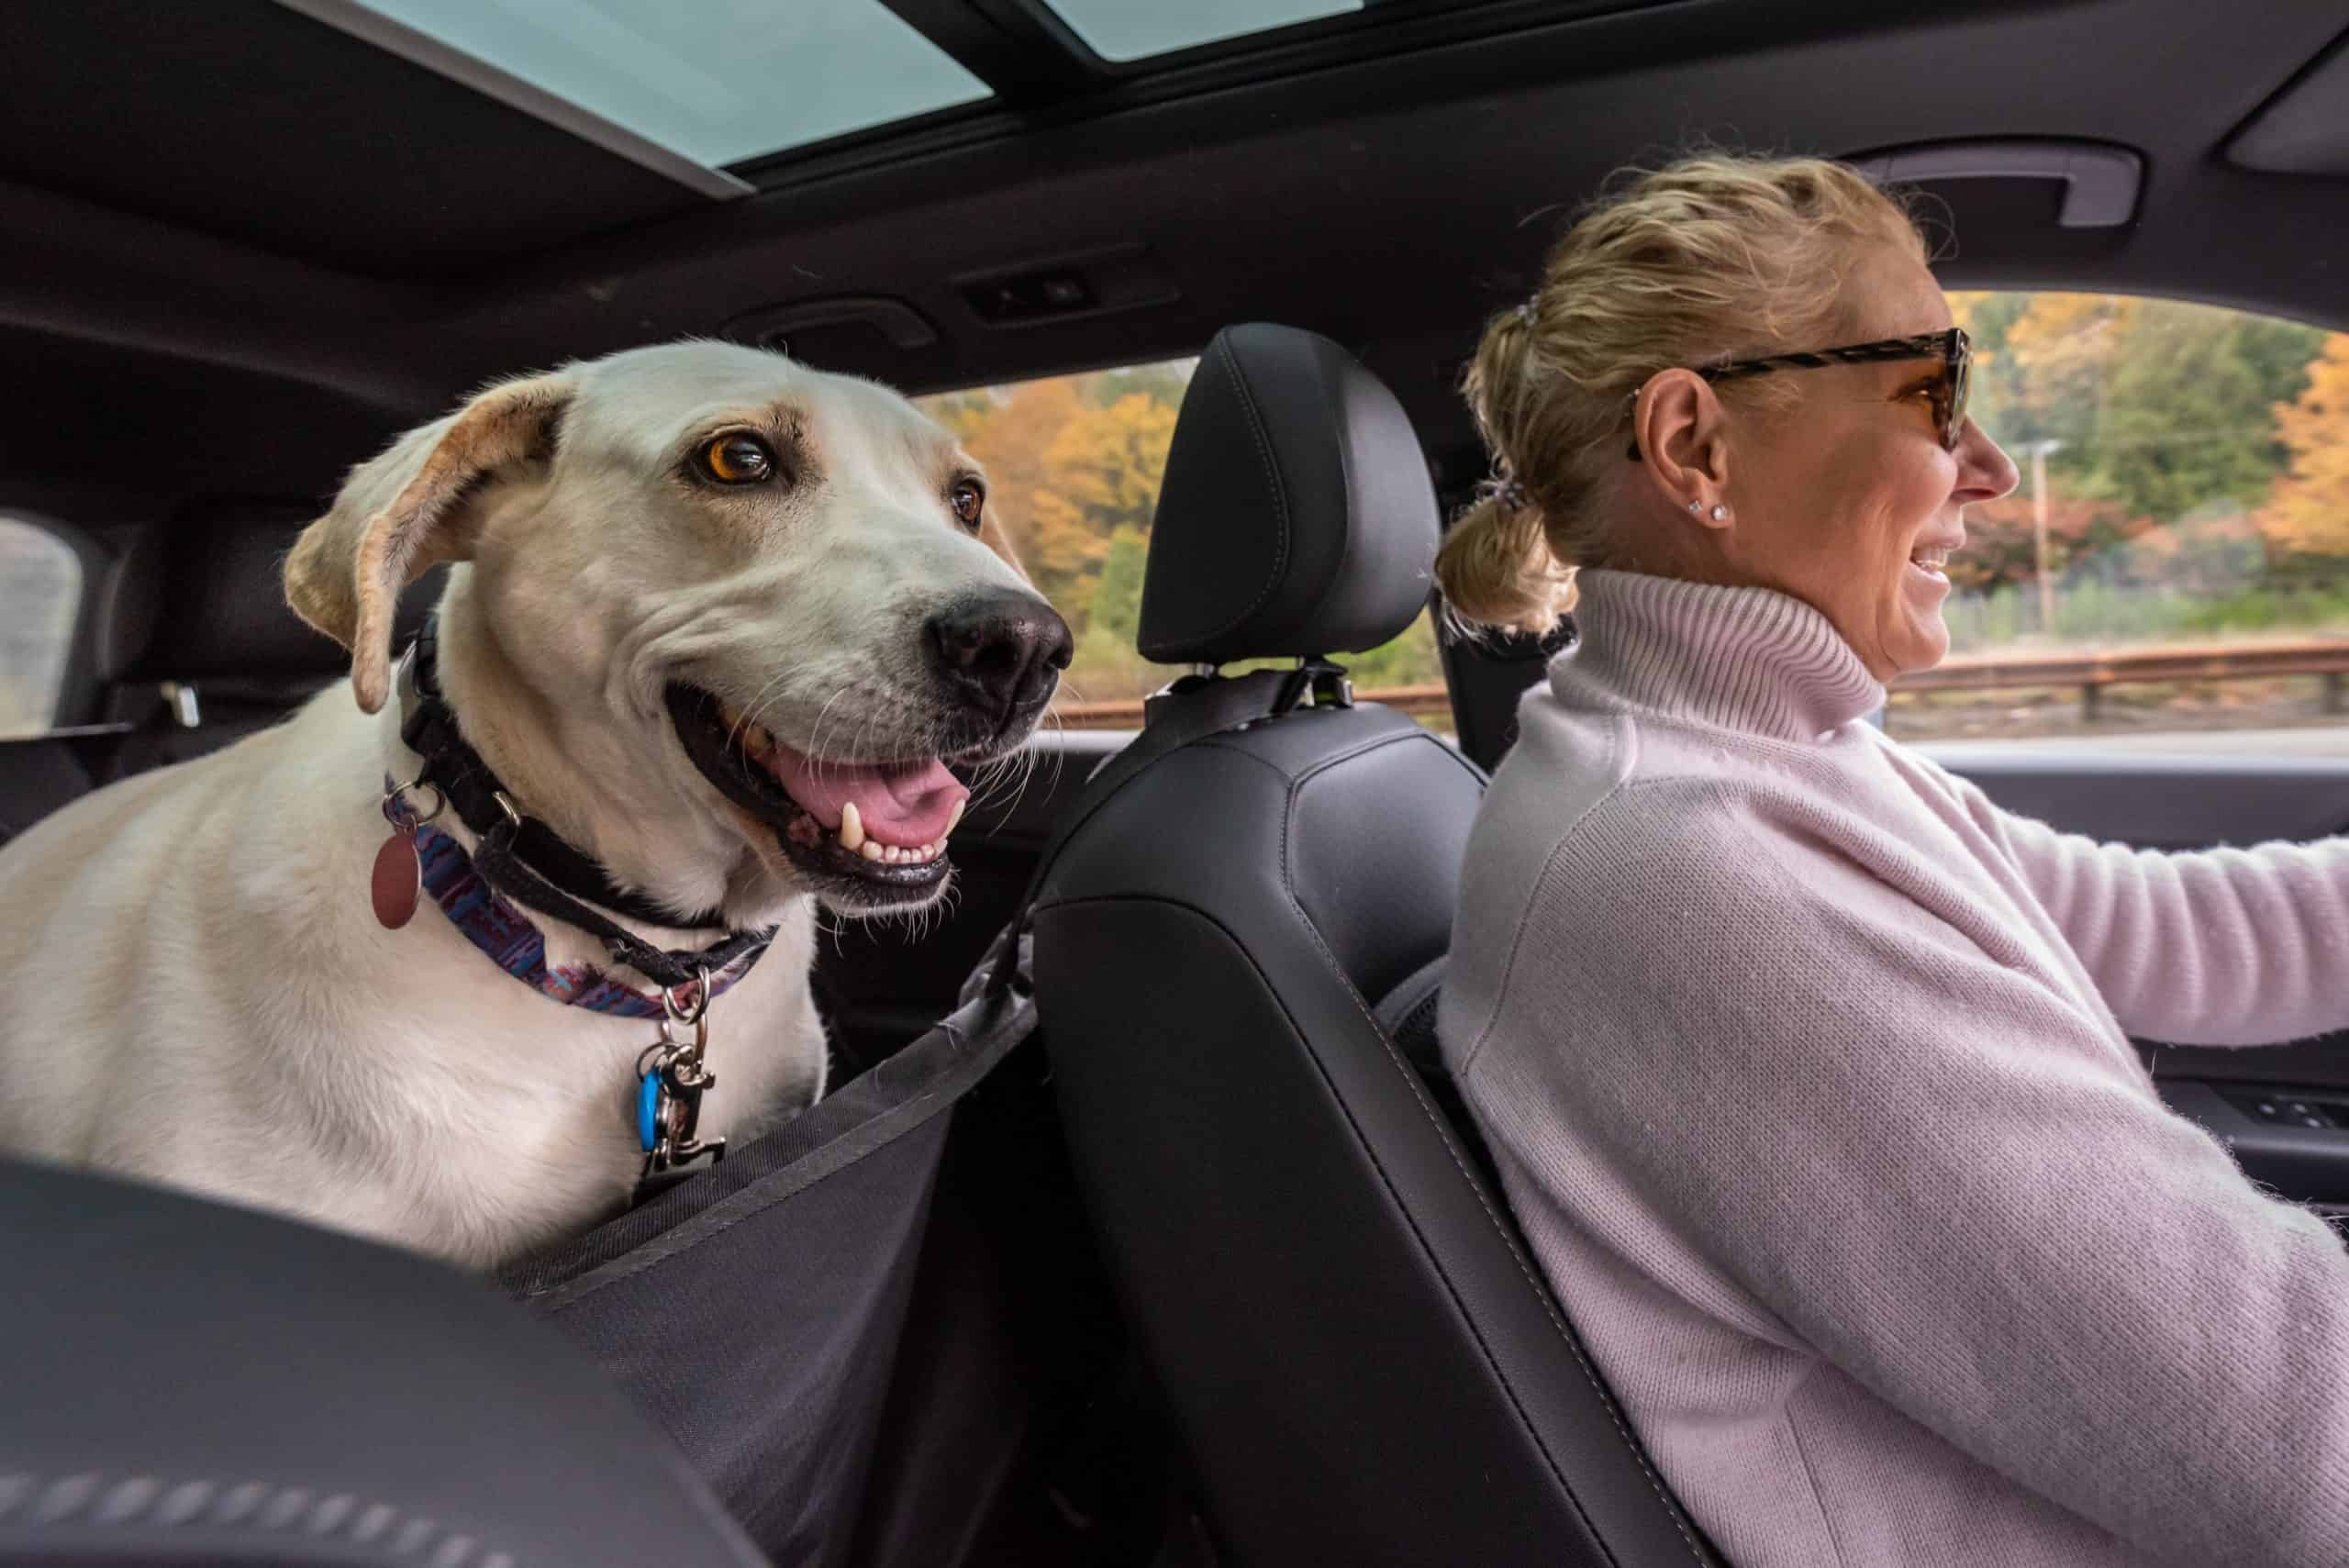 Blond woman drives with Labrador Retriever secured in backseat with protective seat cover. Use car accessories for dogs to keep your pup safe and comfortable whether you're going for a short drive or a road trip.